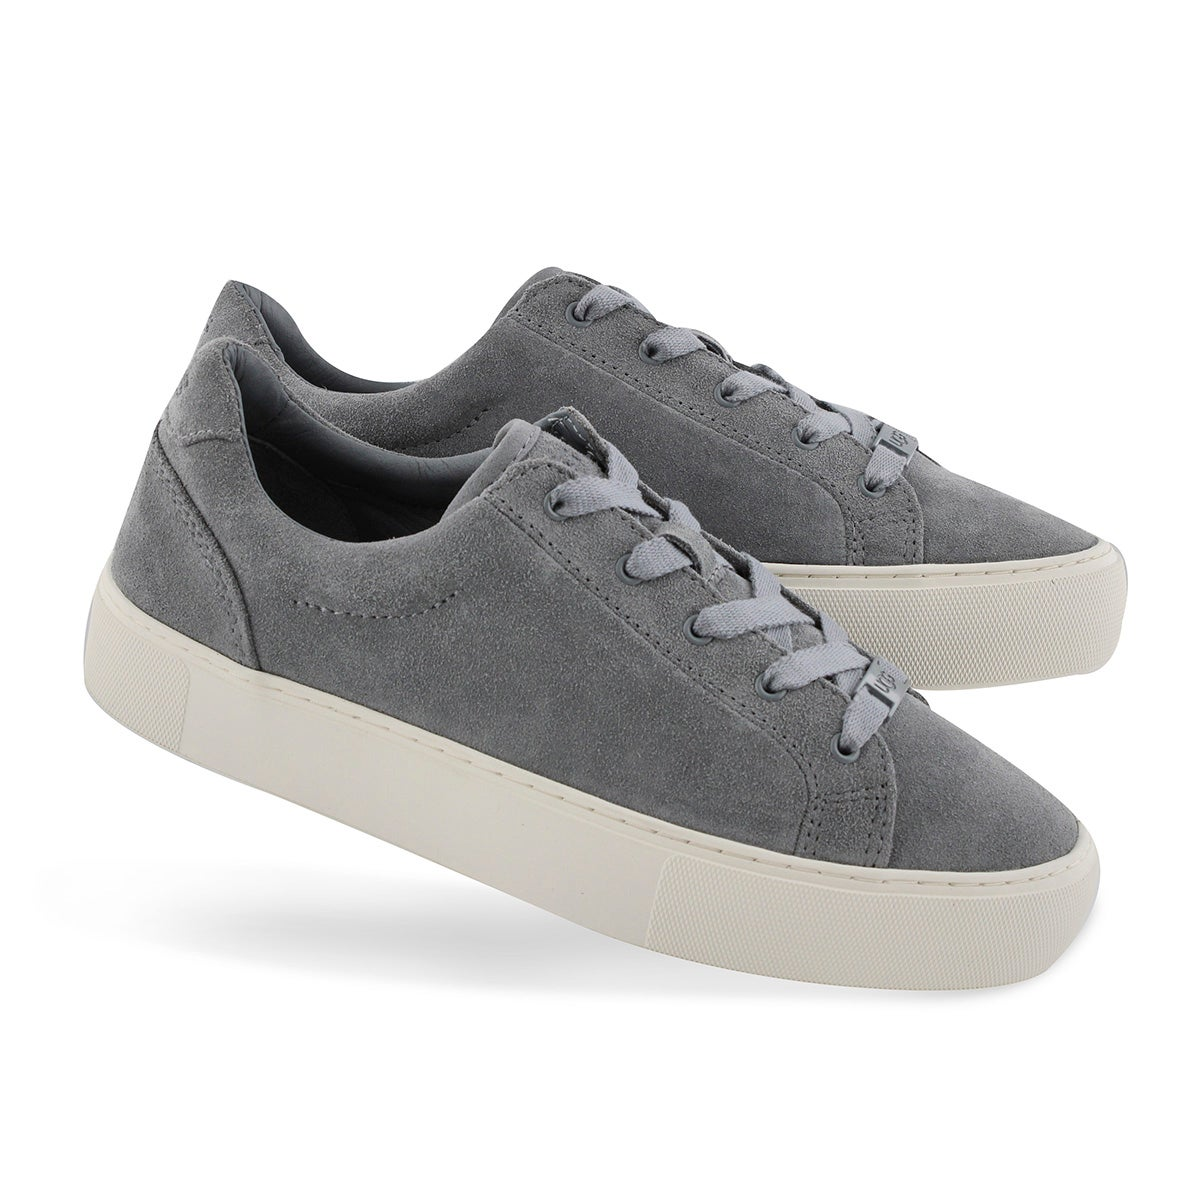 Lds Zilo geyser lace up sneaker